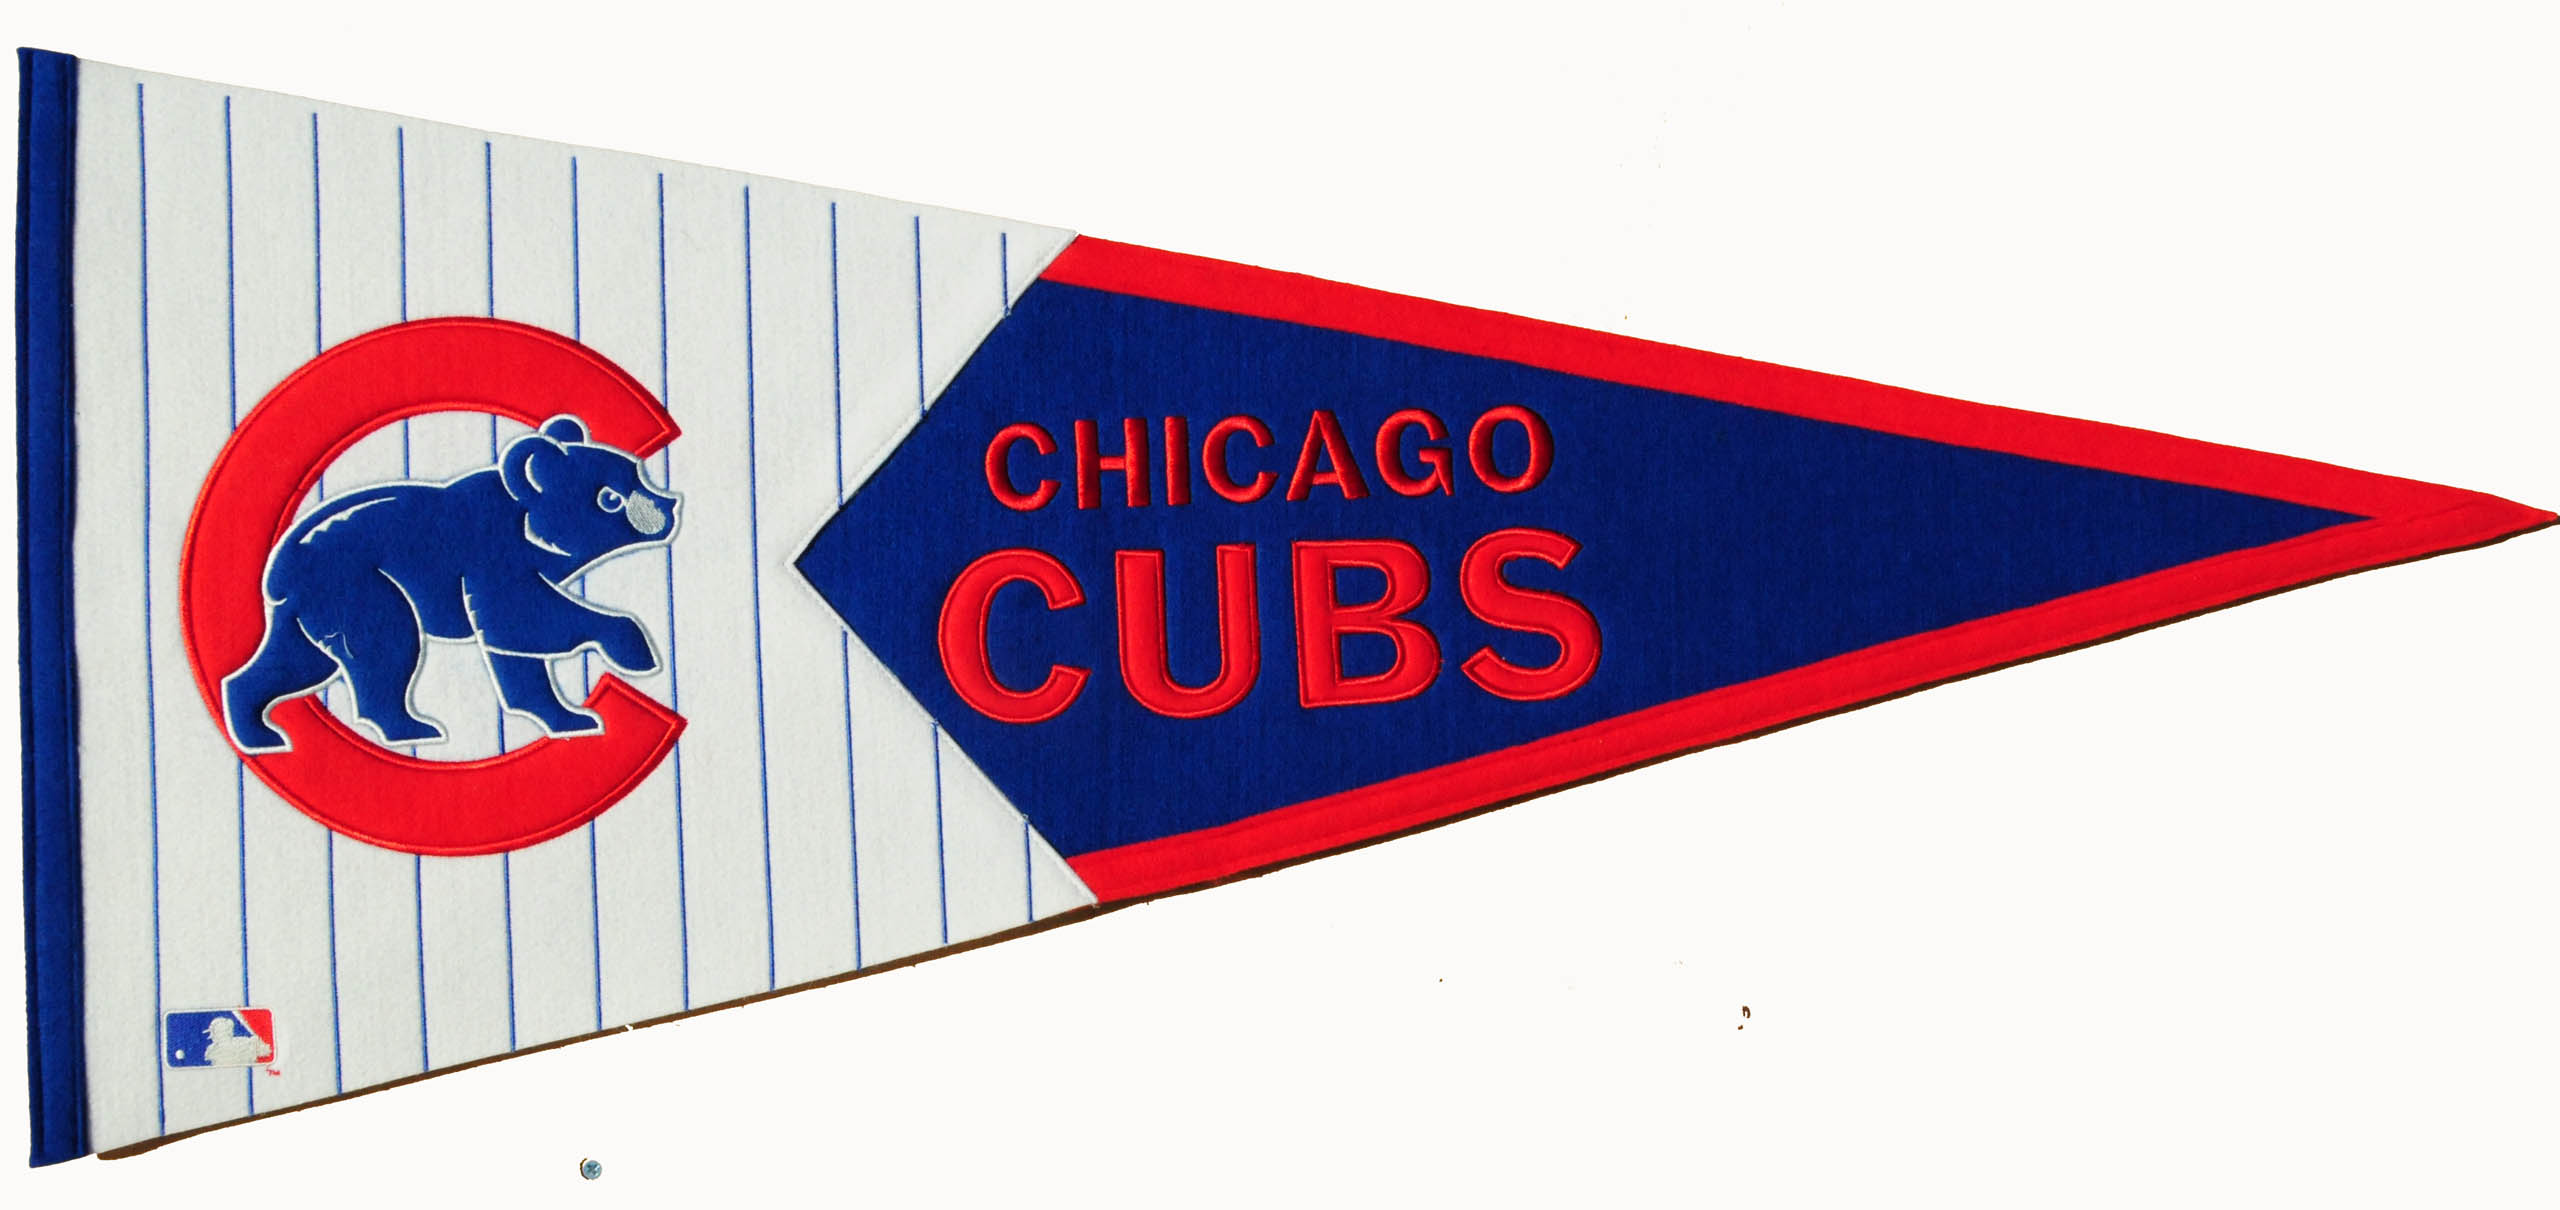 Chicago Cubs Wallpapers for Desktop Daily Backgrounds in HD 2560x1210